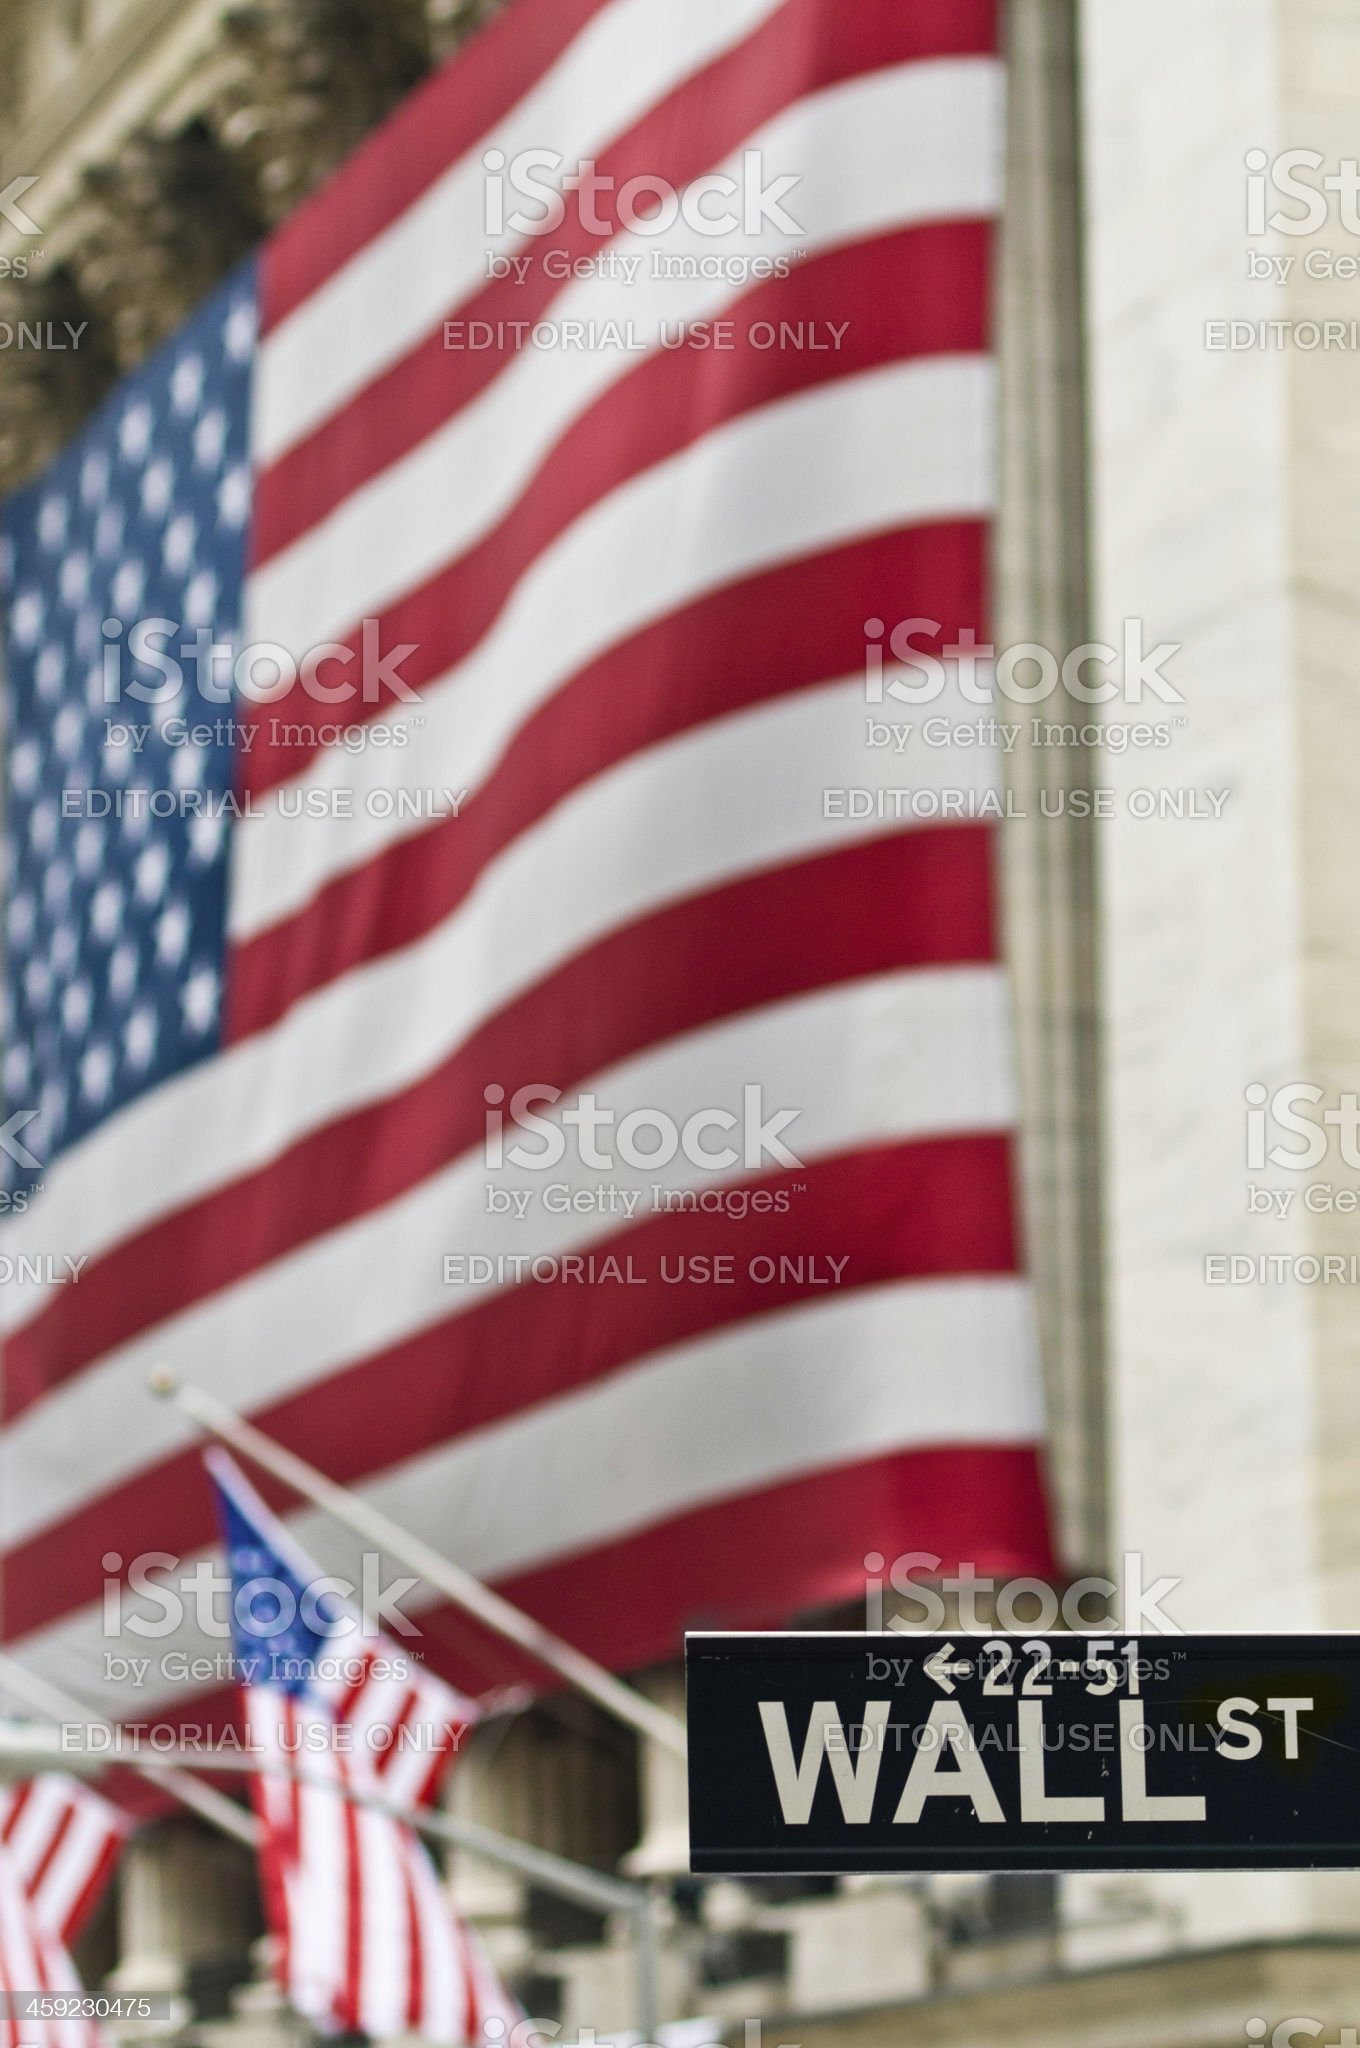 Wall St sign New York Stock Exchange Stars and Stripes royalty-free stock photo